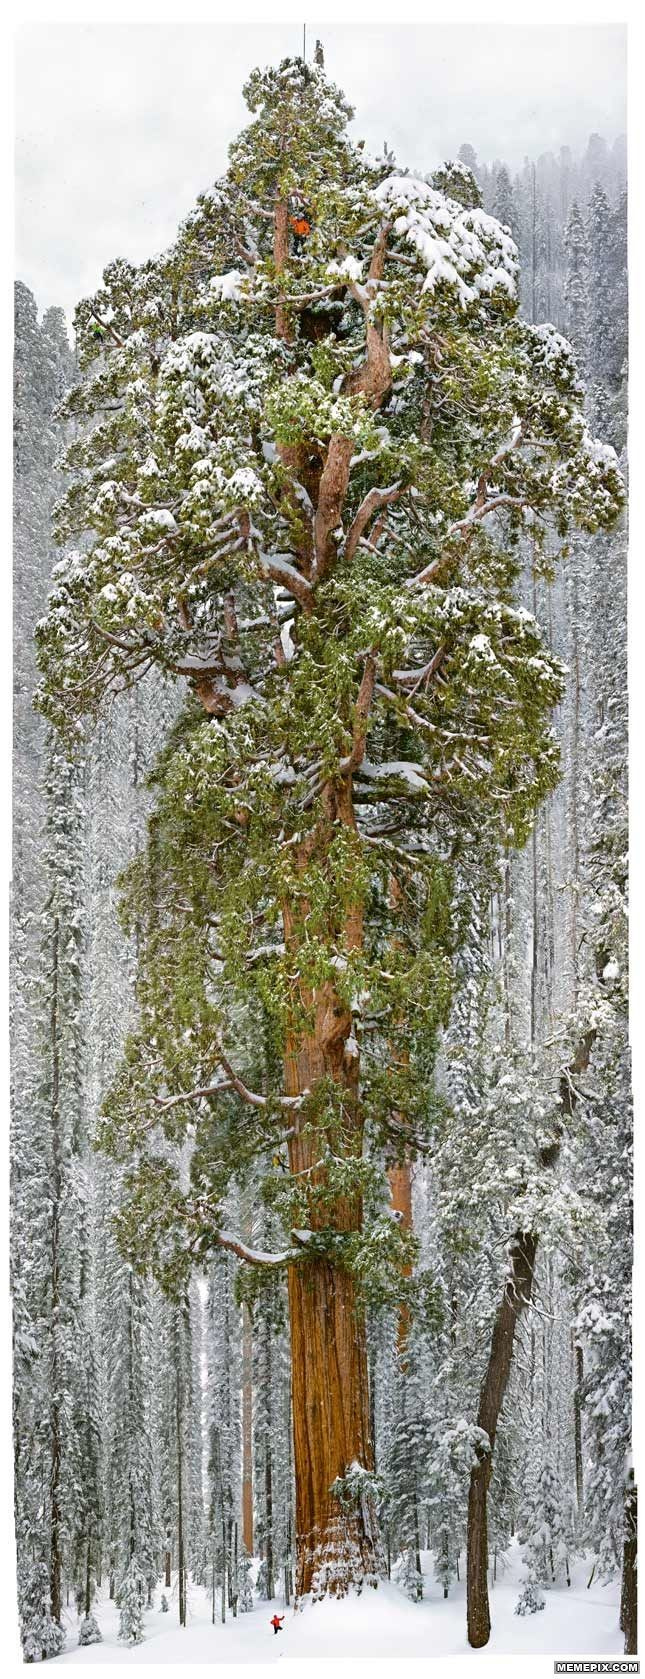 The President, the third largest tree on earth.